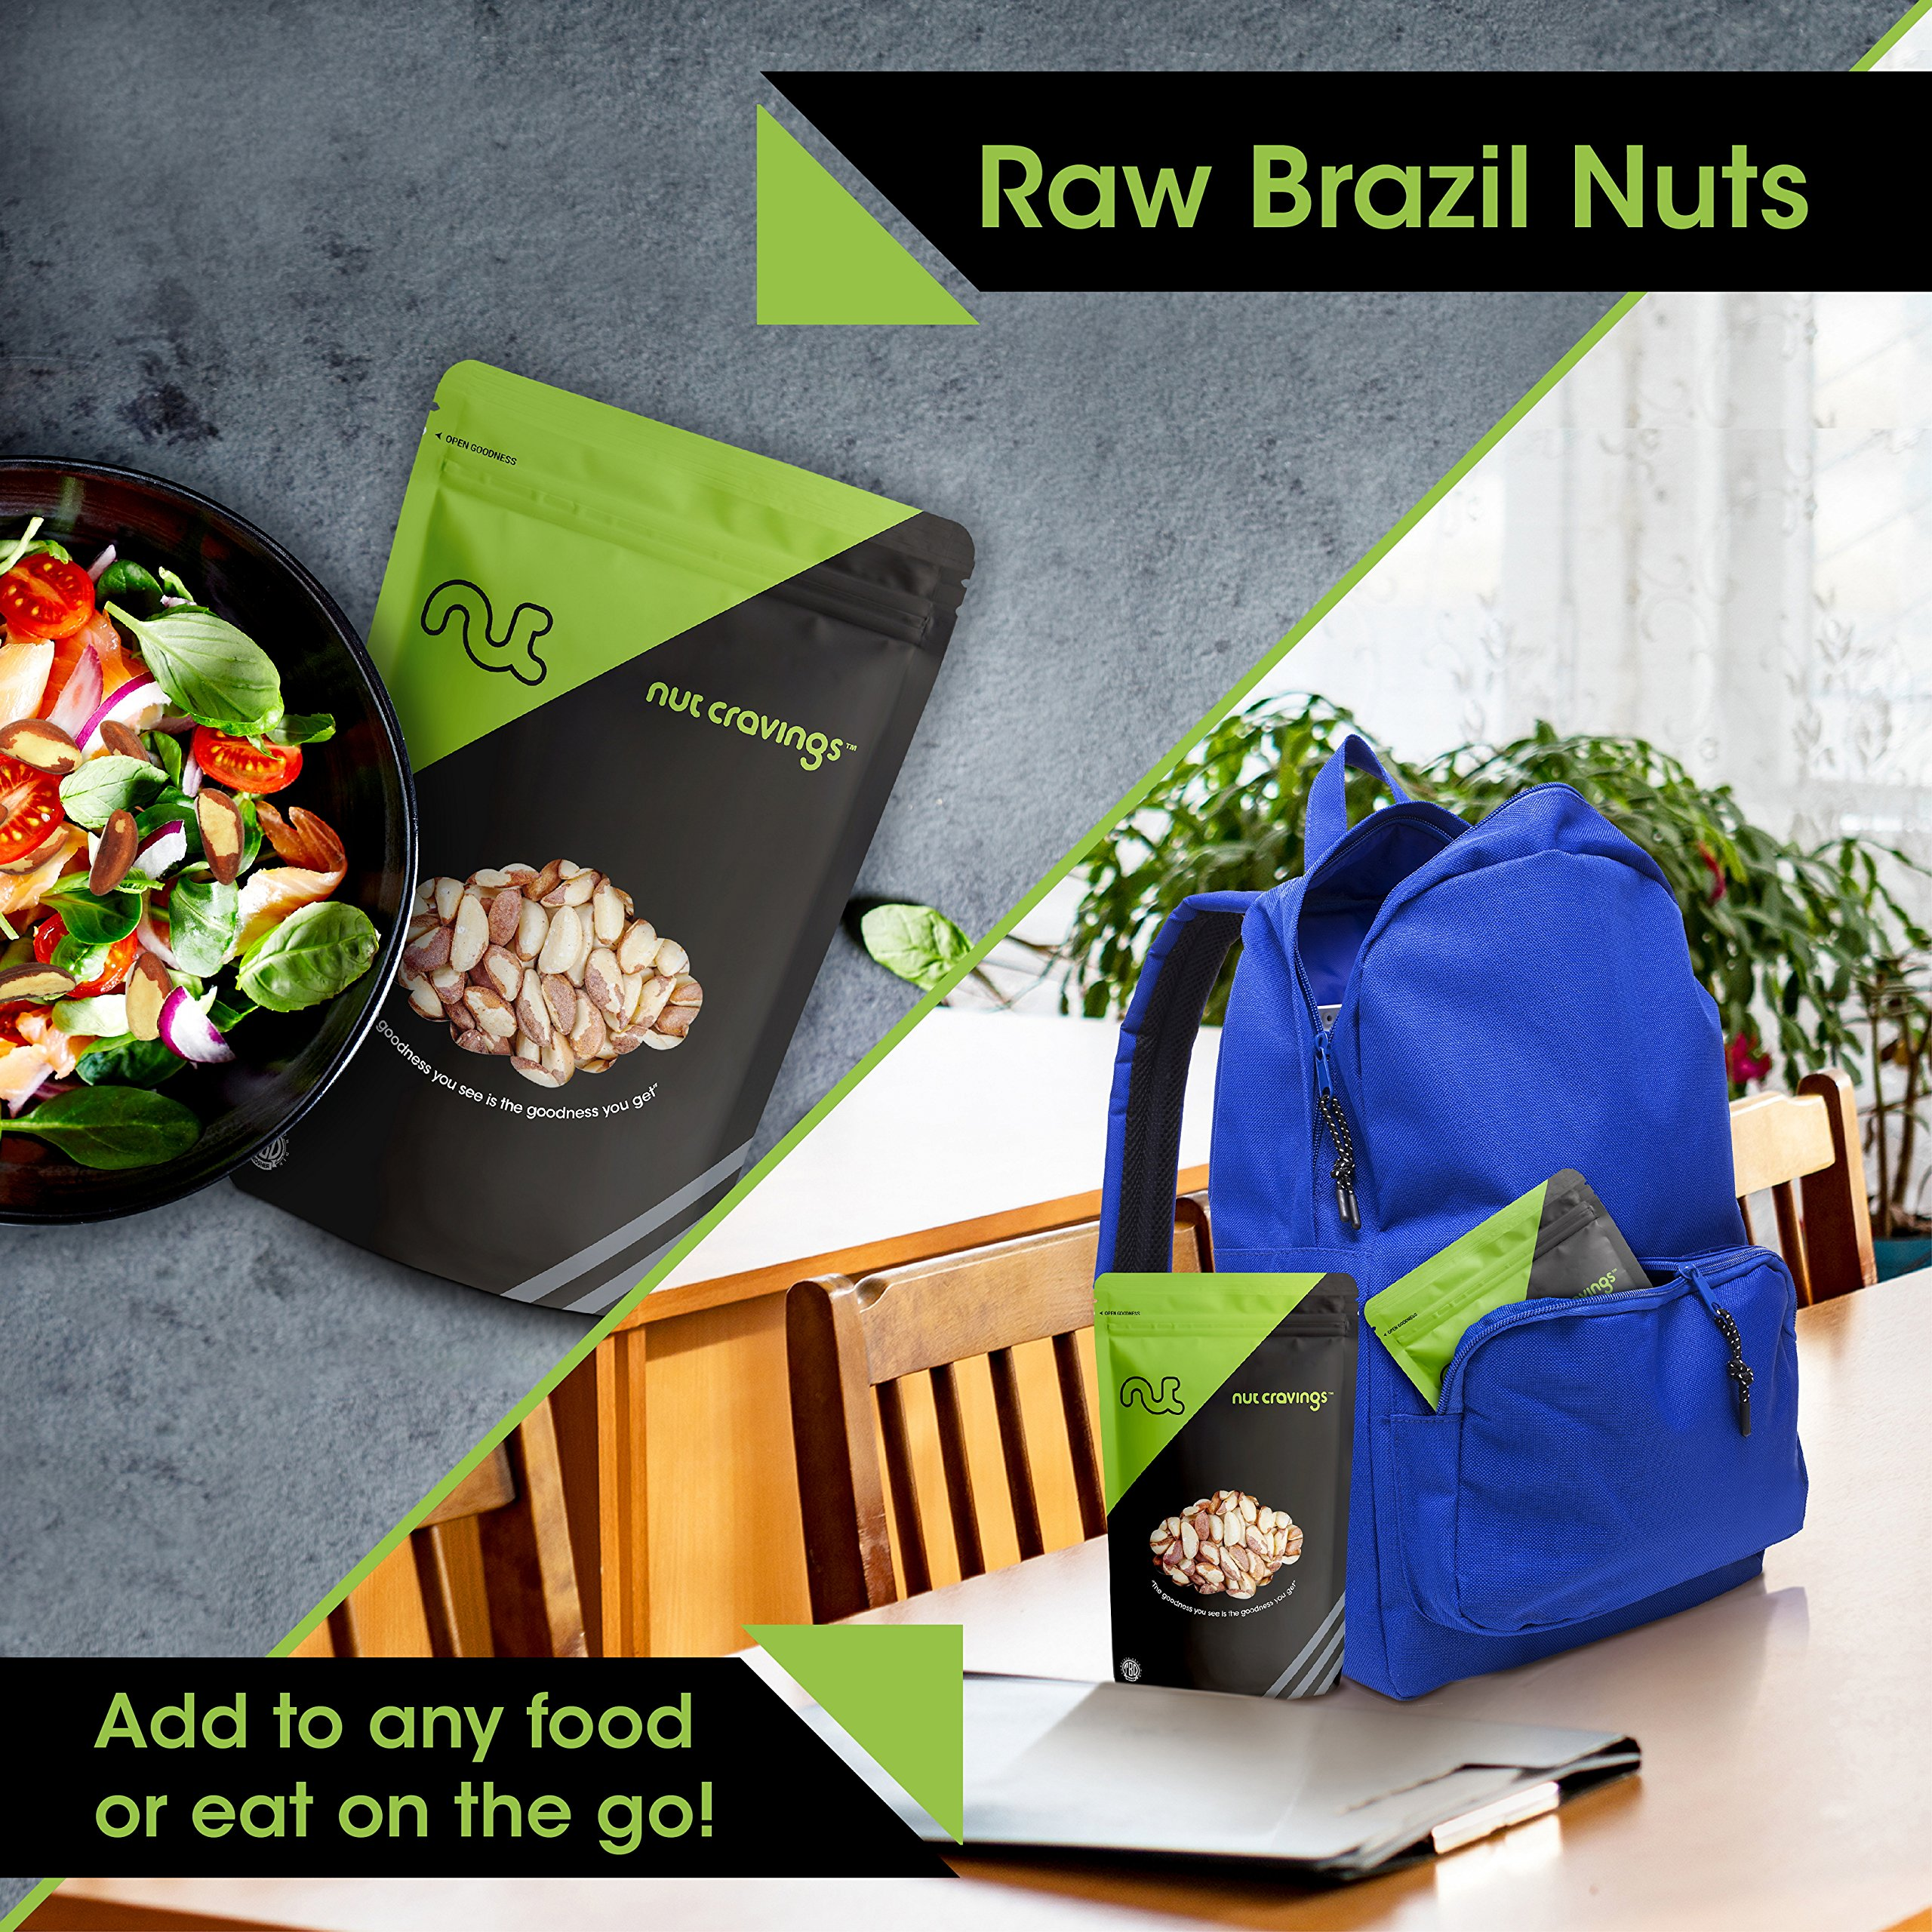 Nut Cravings Raw Compare To Organic Brazil Nuts (3 Pounds) – Whole, Unsalted, No Shell Brazilian Nuts – 48 Ounce by Nut Cravings (Image #3)